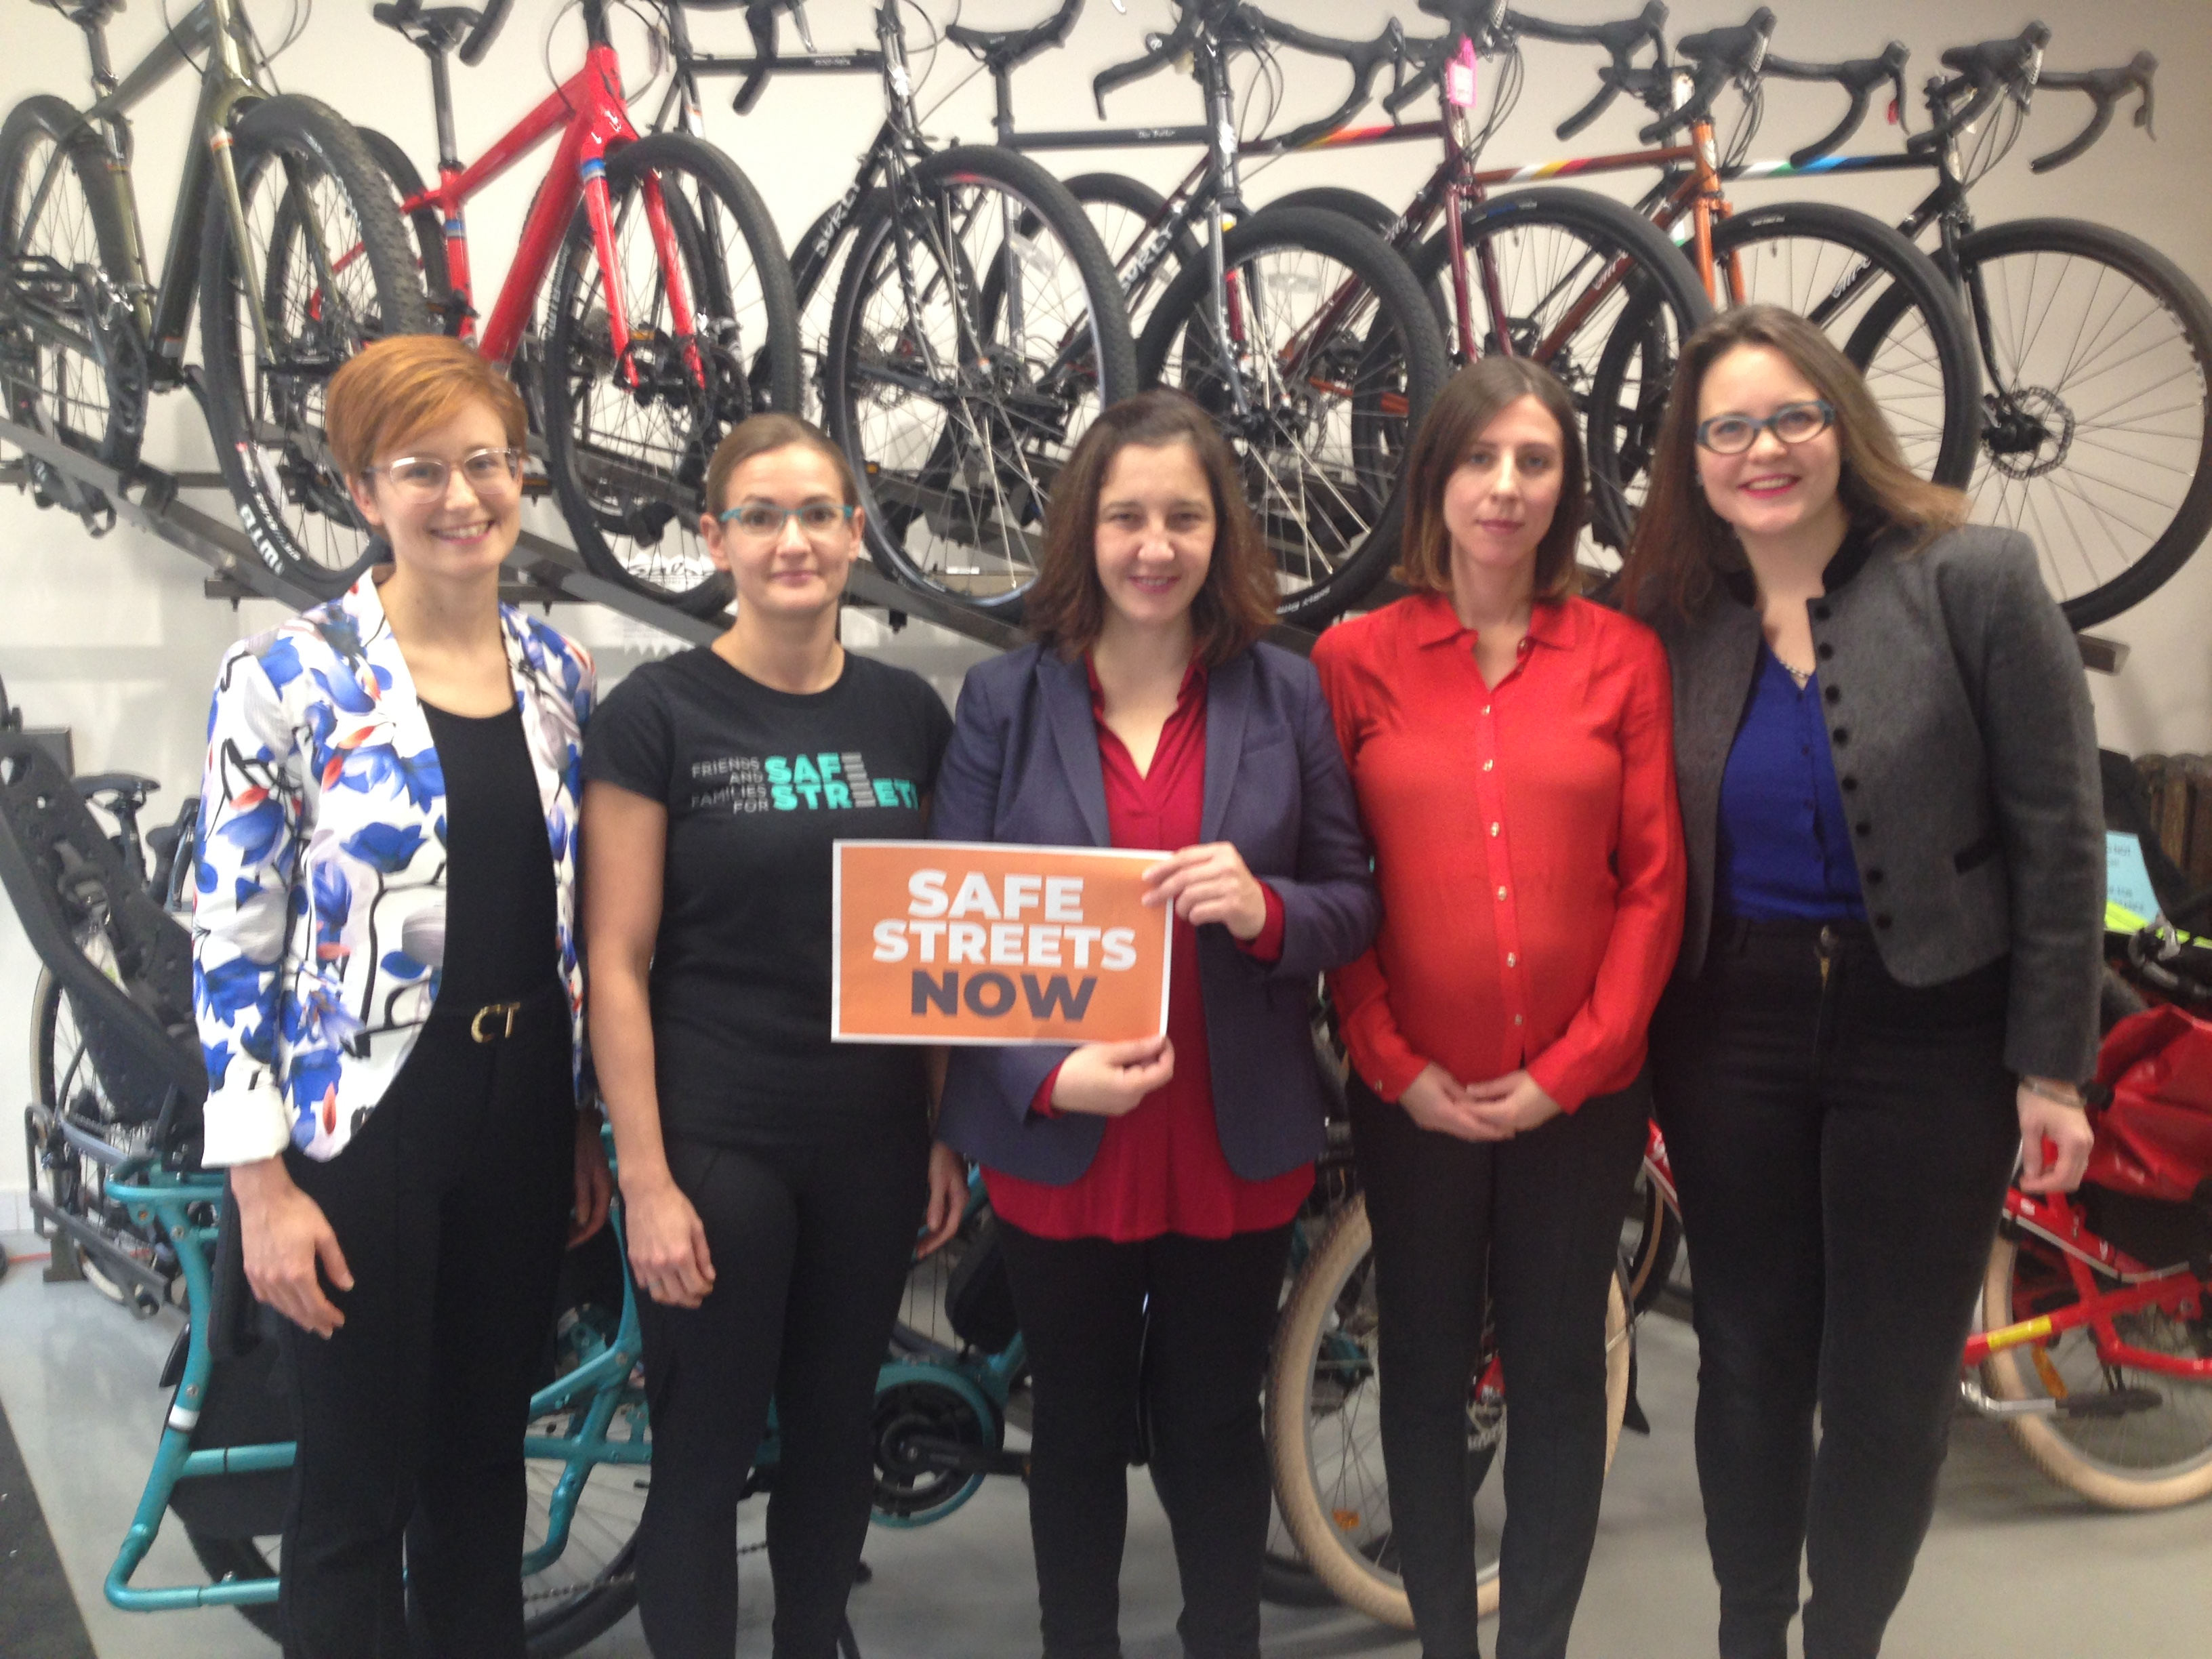 """Keagan Gartz stands with MPP Jessical Bell and other supporters in a bike shop holding a sign """"Safe Streets Now"""""""